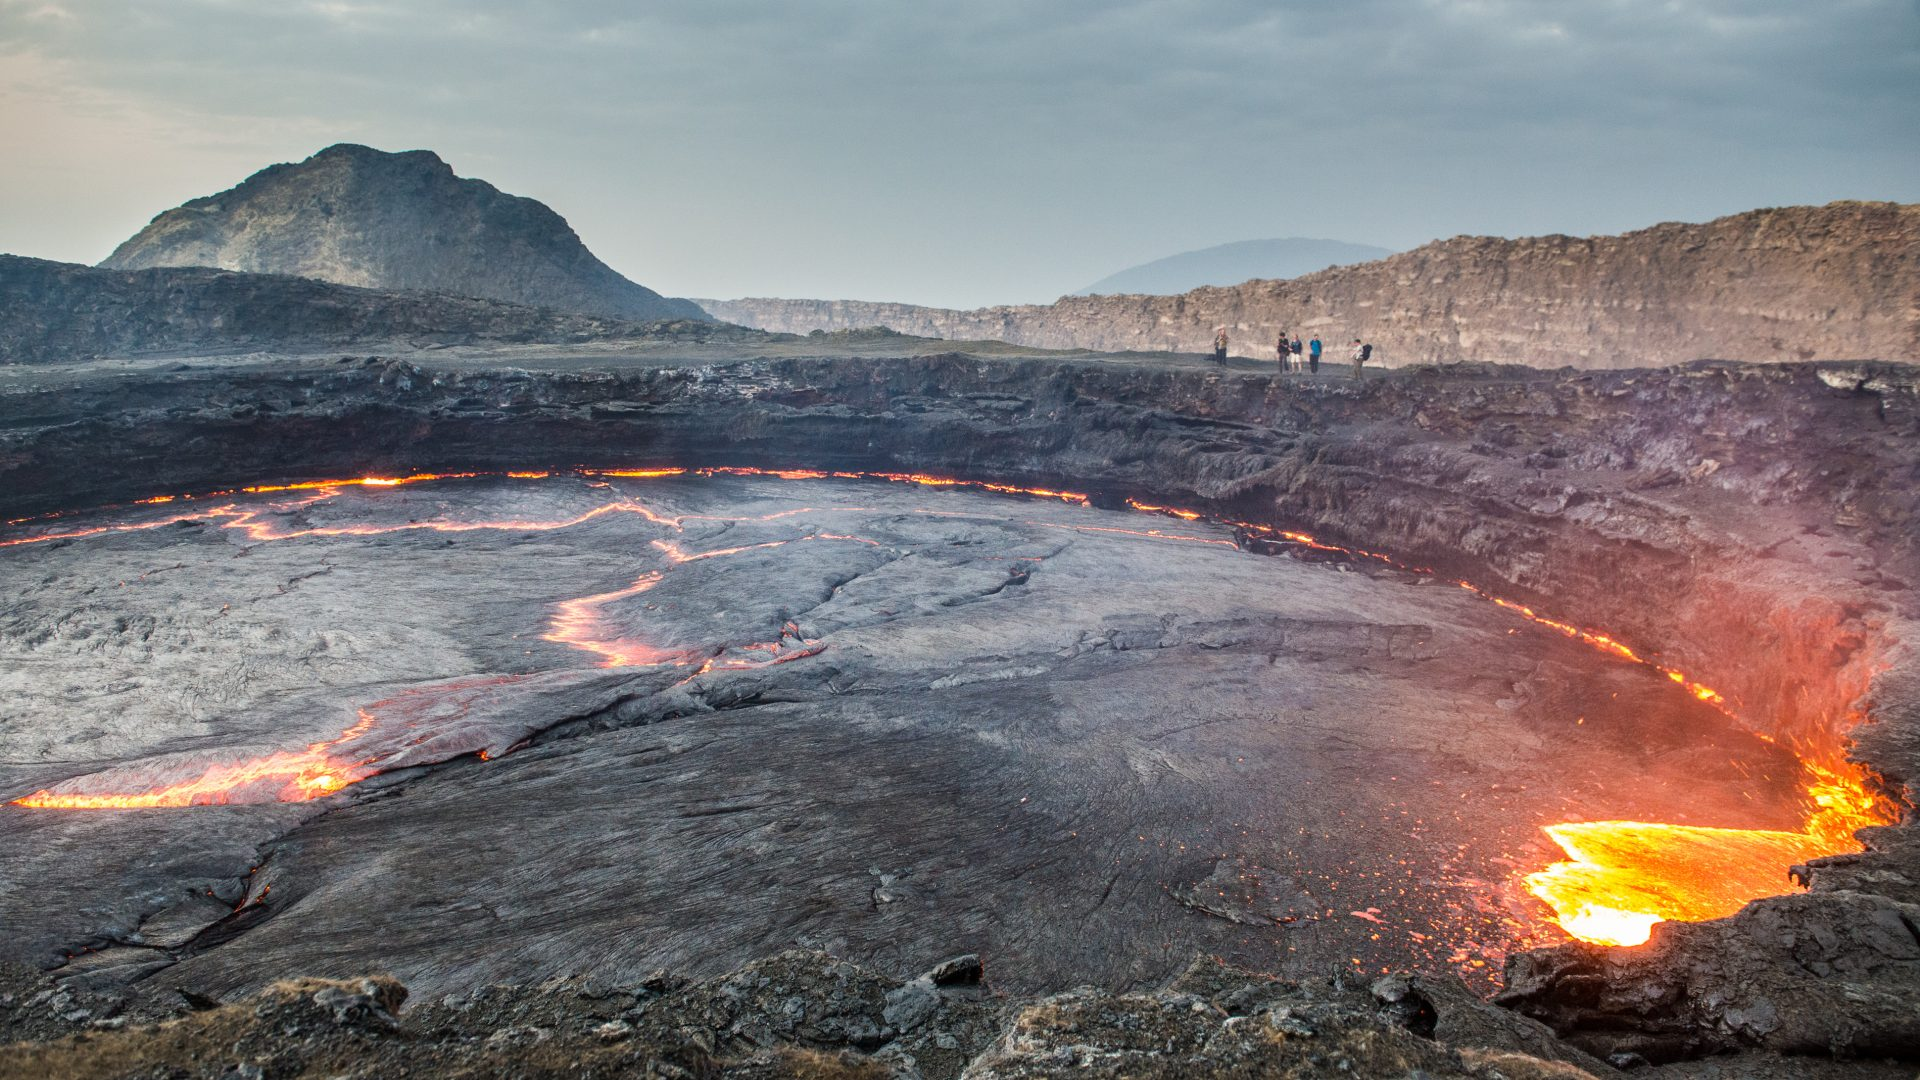 Tourists can be seen on the far rim of the Erta Ale volcano in Ethiopia.